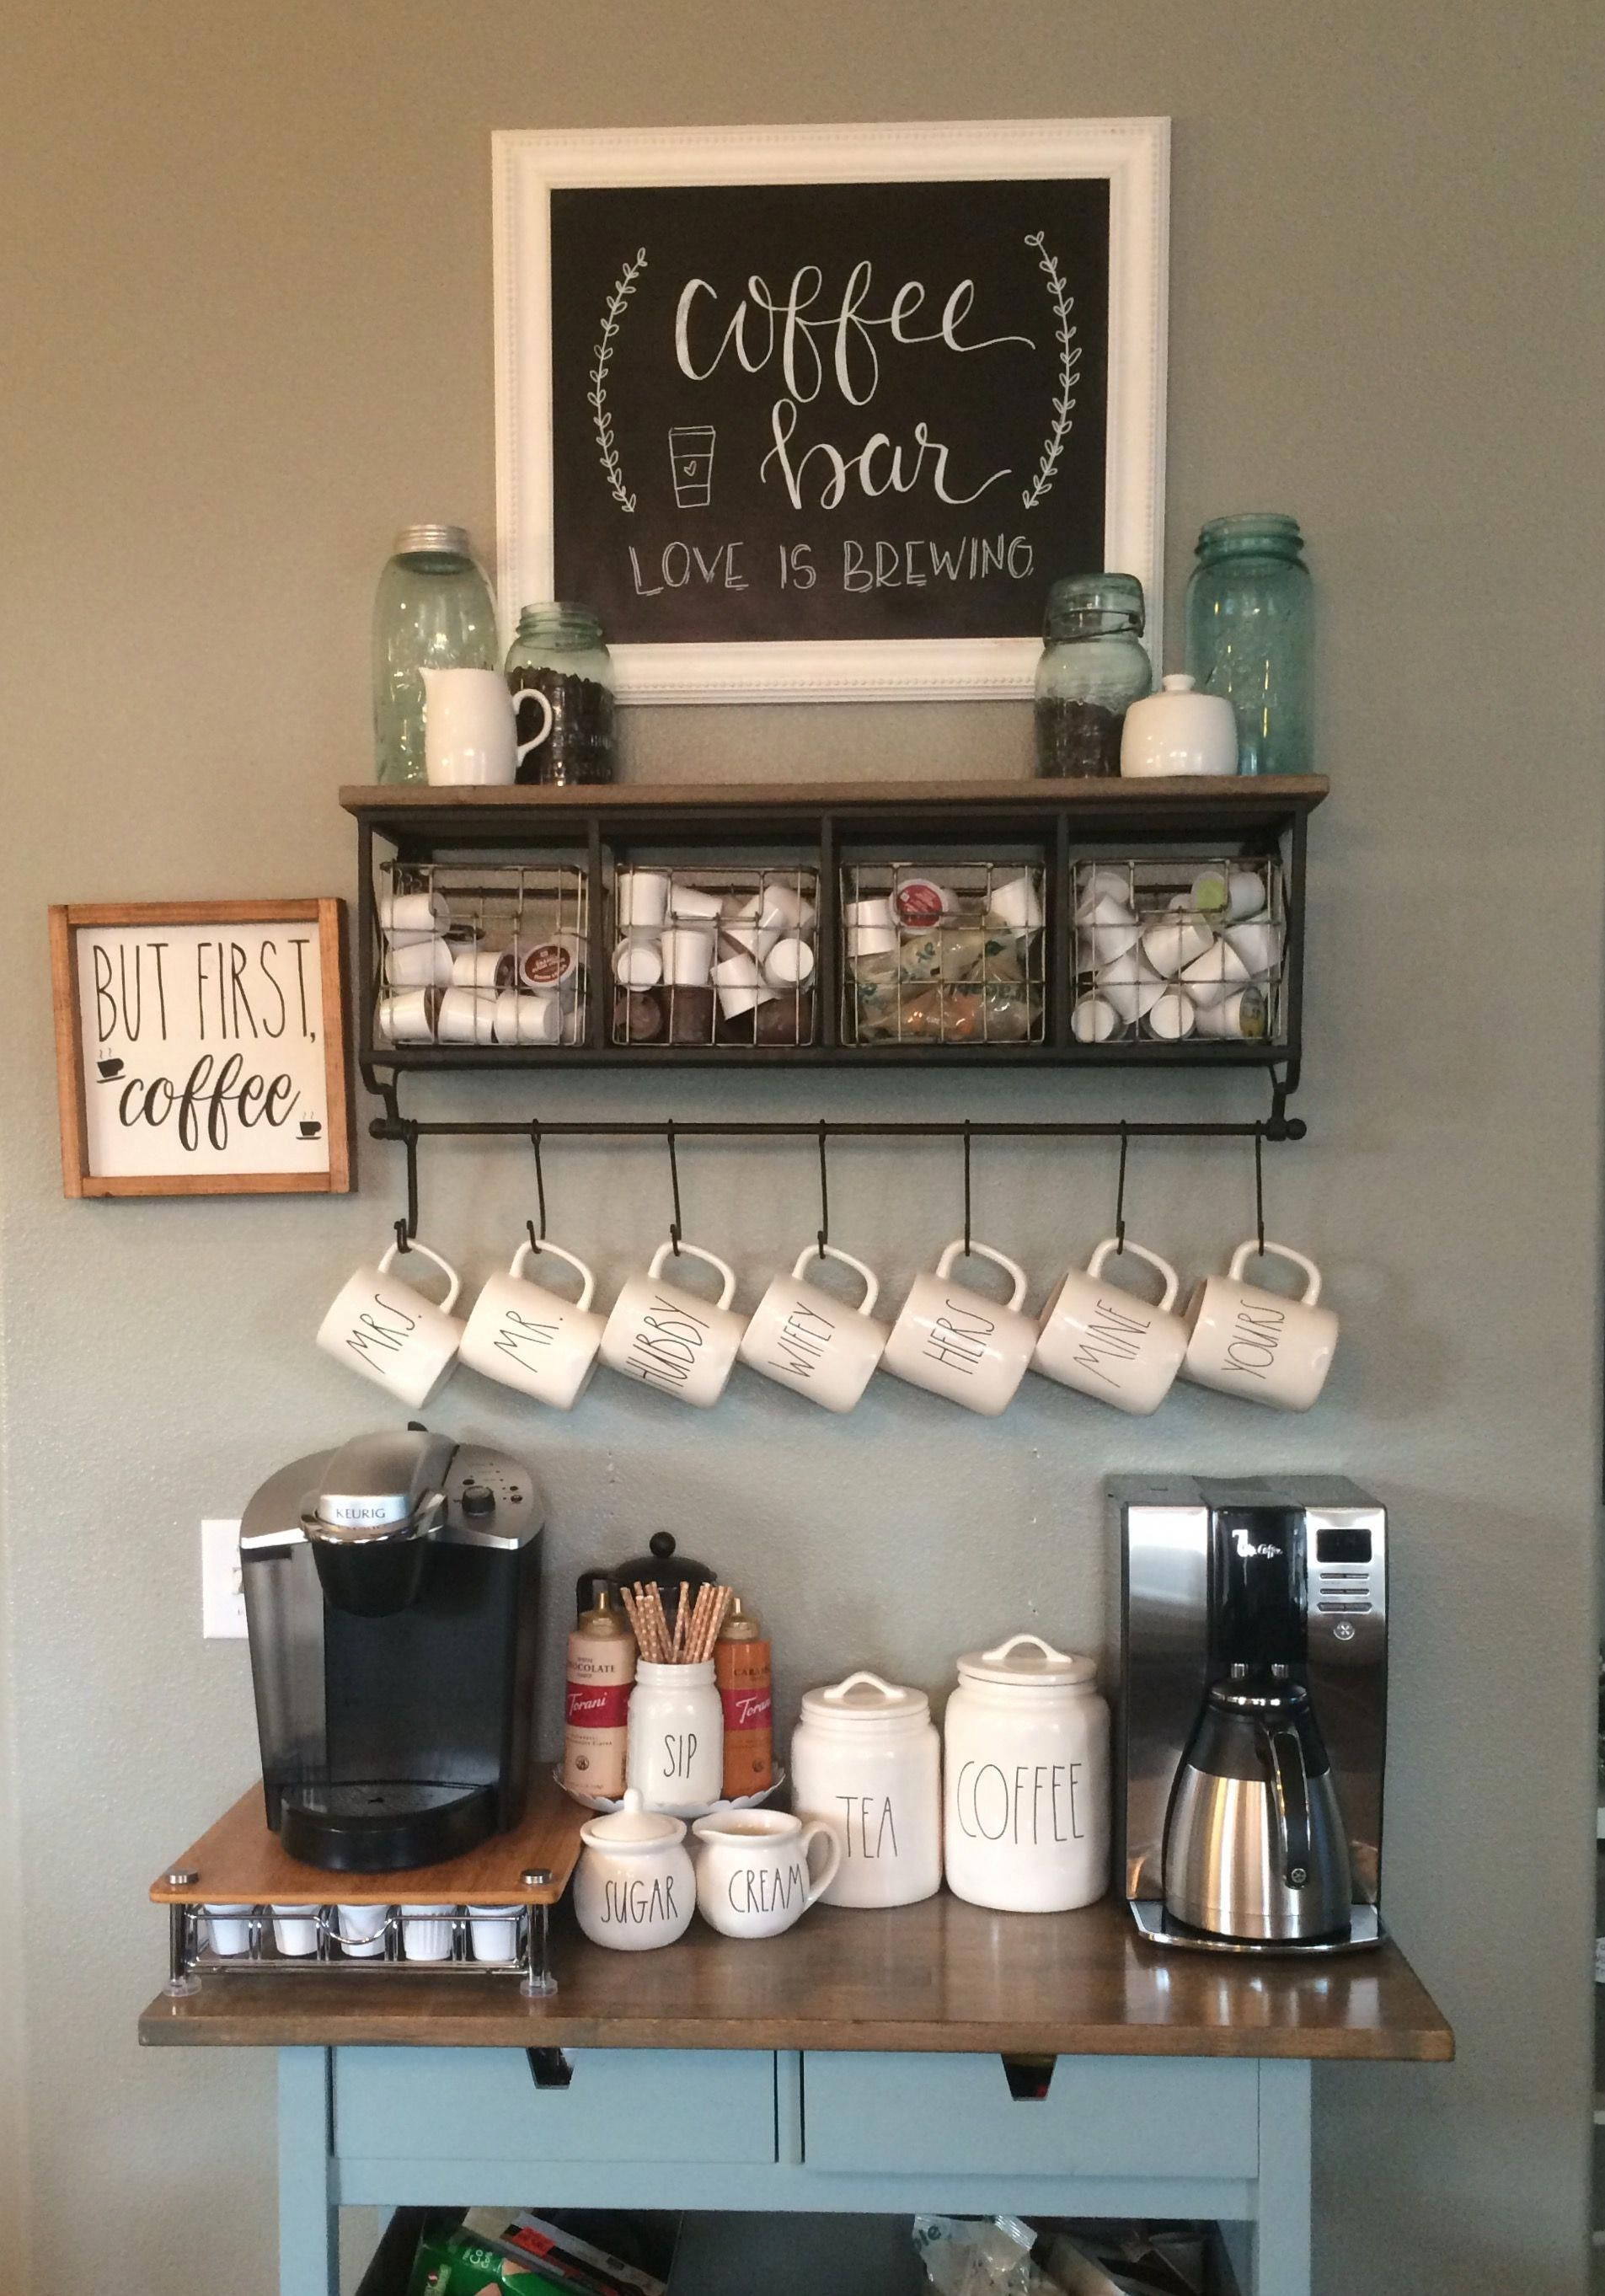 Rae Dunn filled coffee bar | Awesome Coffee Bar Ideas that Will Makes All Coffee Lovers Falling in Love TAGS: Coffee bar ideas, Coffee station kitchen, DIY Coffee bar in kitchen, Farmhouse coffee bar, Keurig station #Coffeebar #Coffeestation #homecoffeebar #bartablesdiy #barideas #coffeestorage #HomeBarcart #coffeebarideas